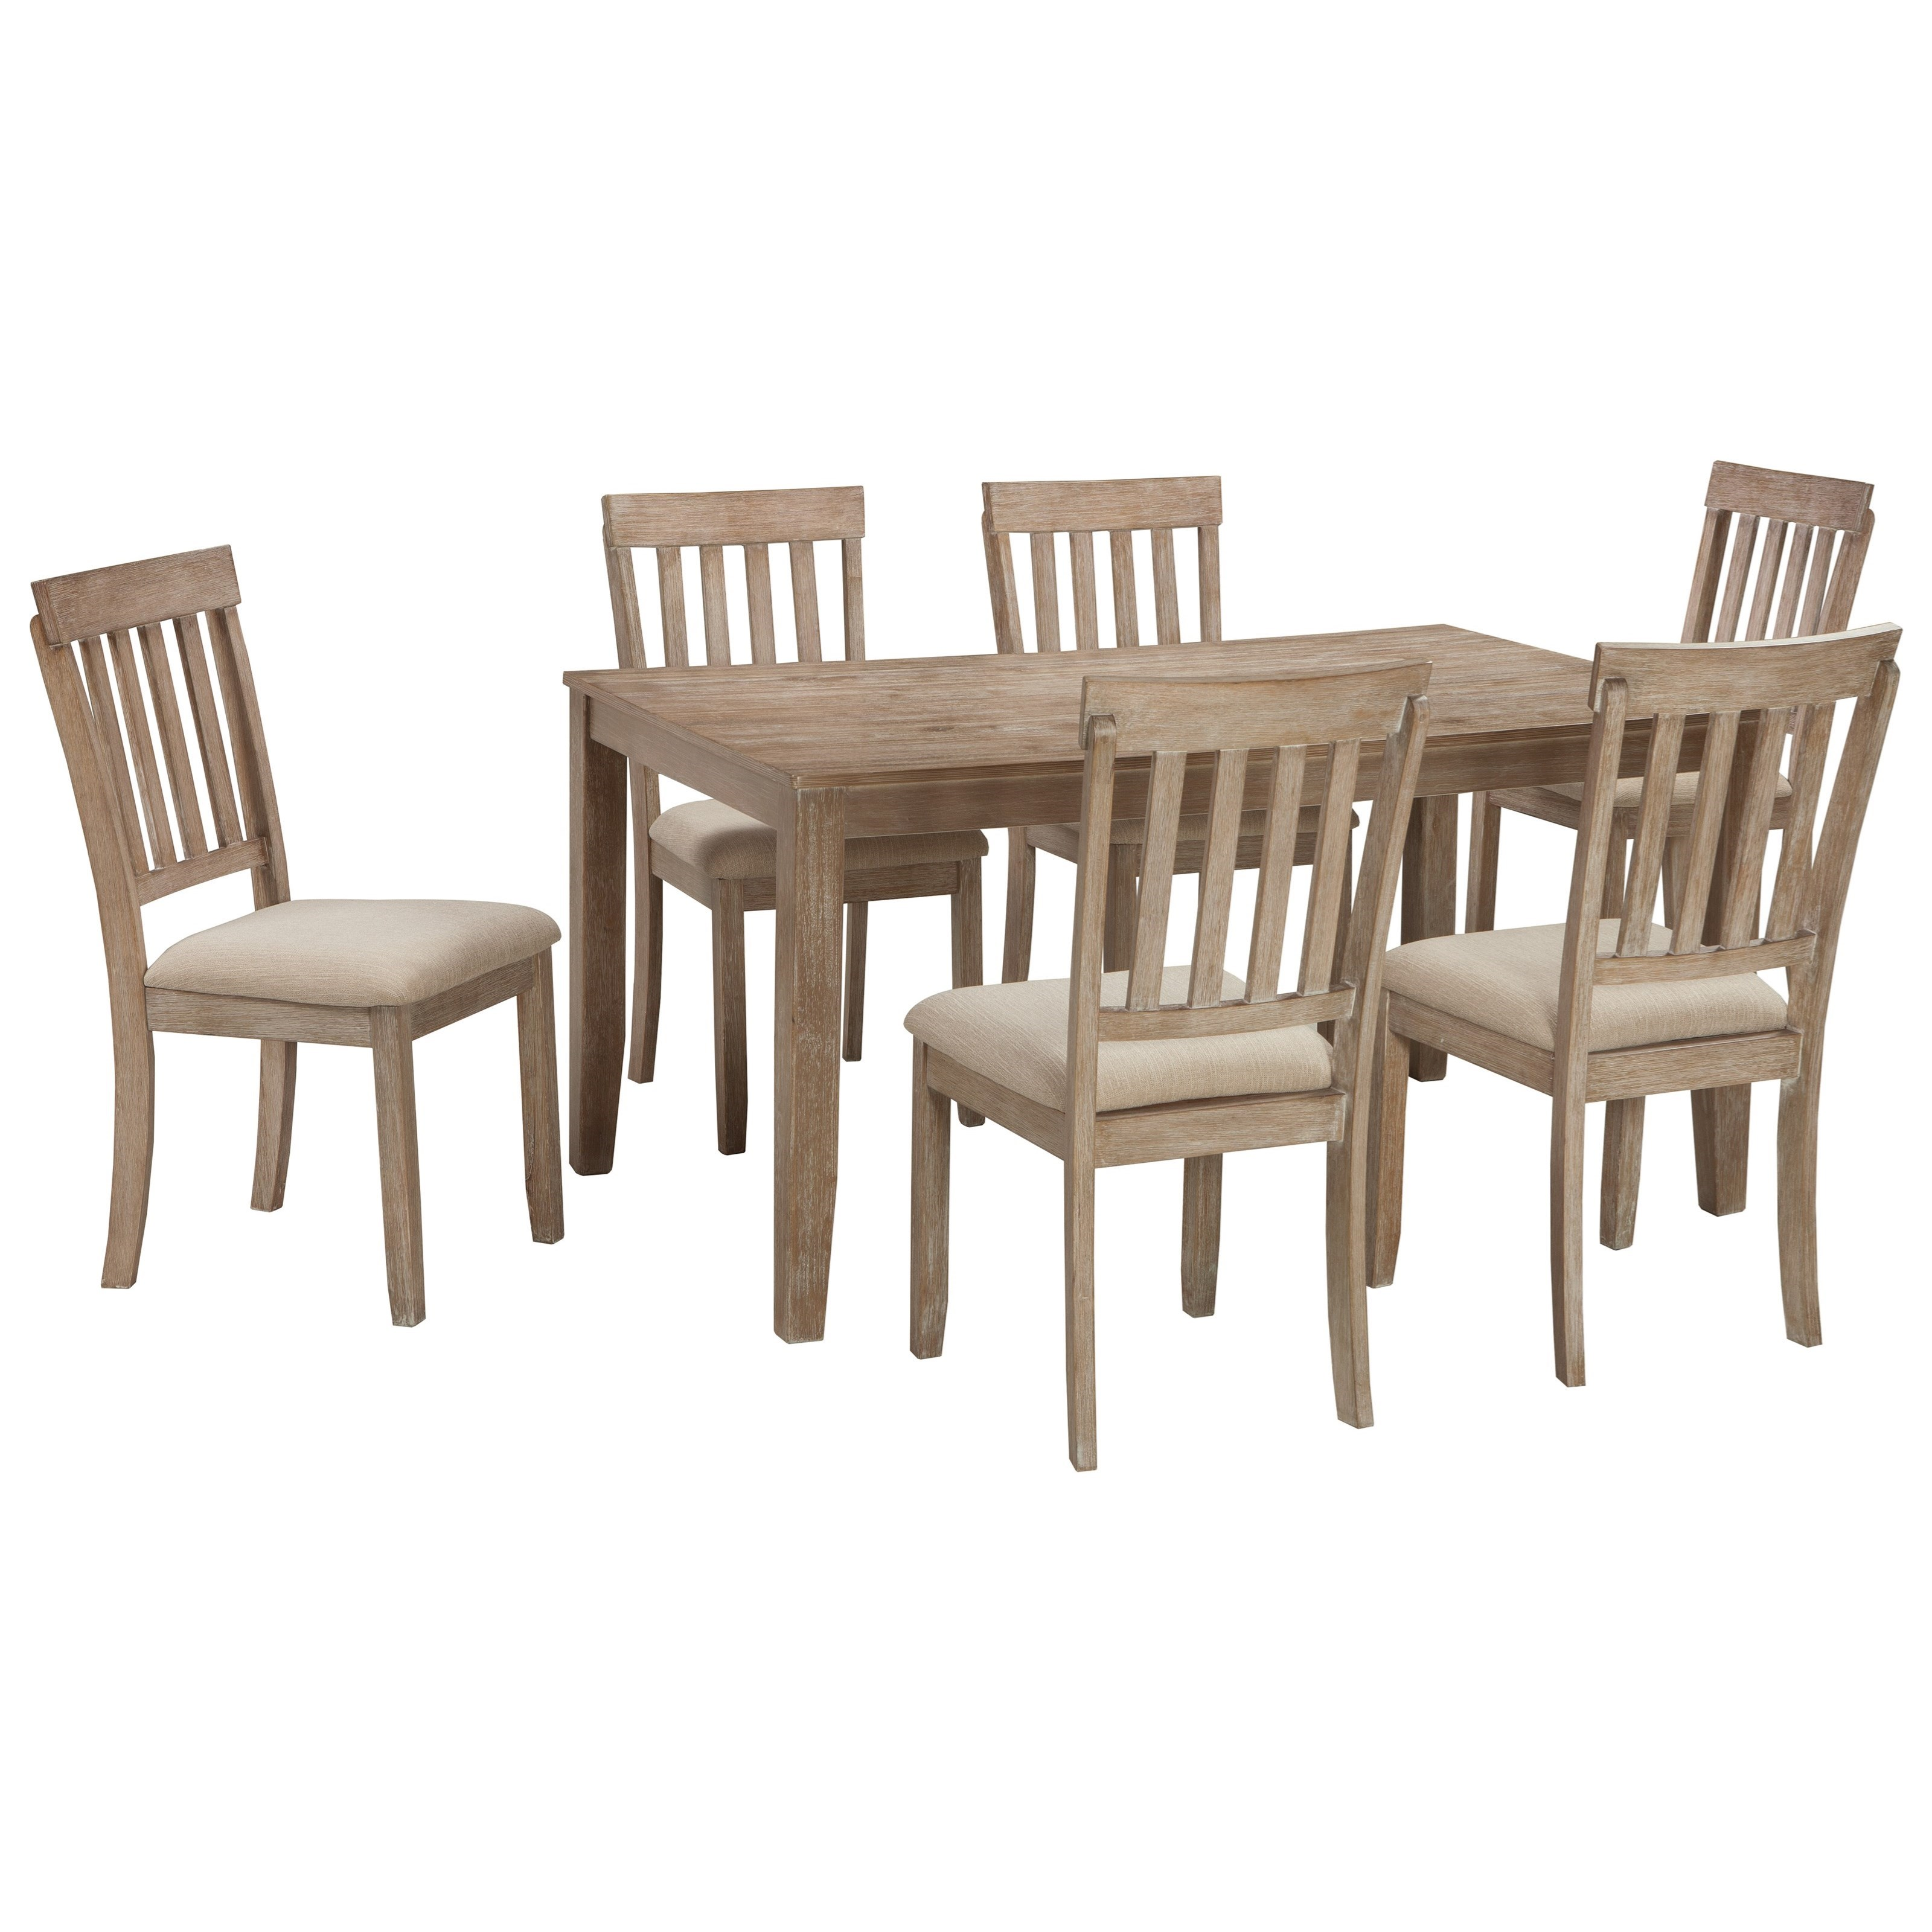 Benchcraft mattilone casual dining room table set with 6 for Casual dining room chairs